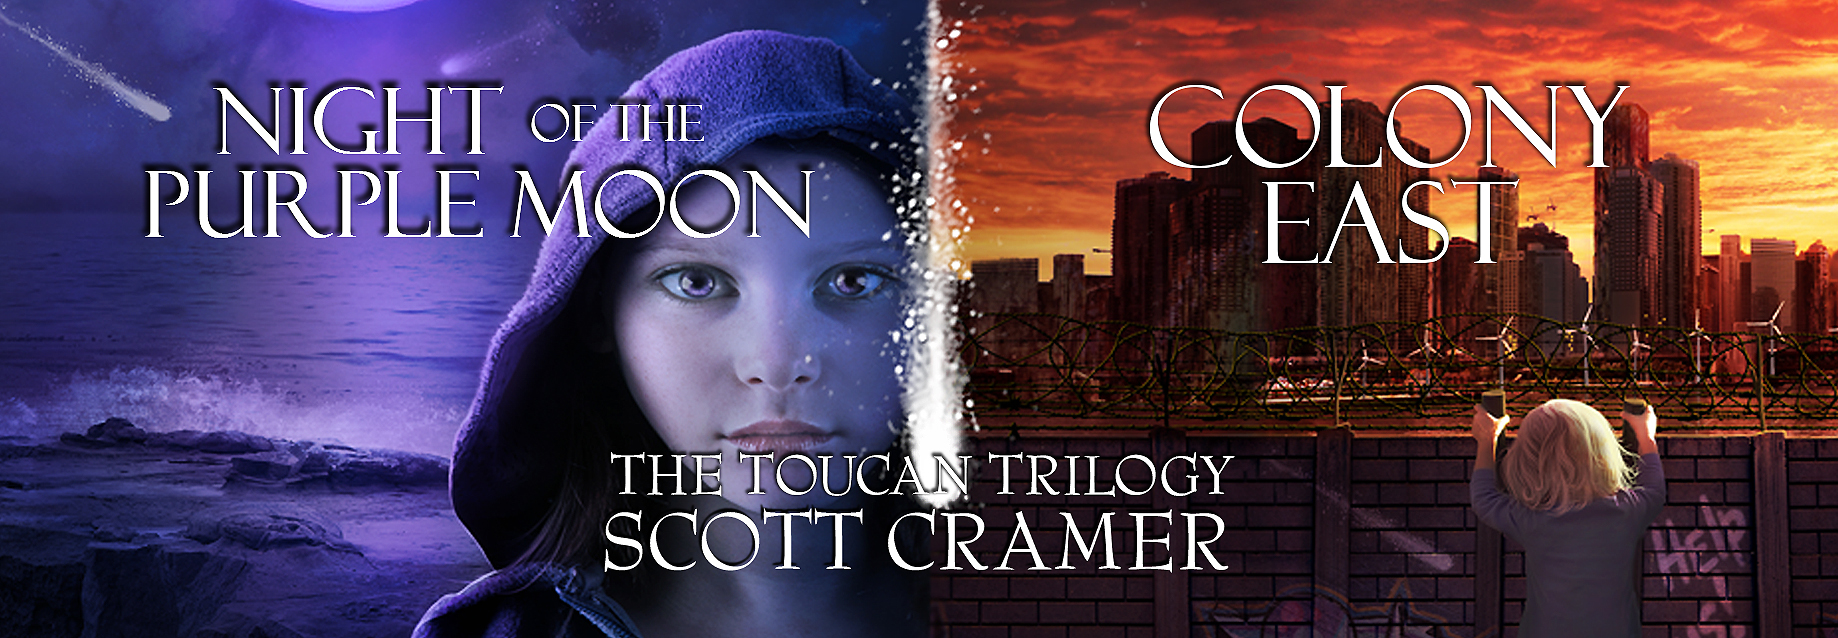 scott cramer bookmark front1 (2)